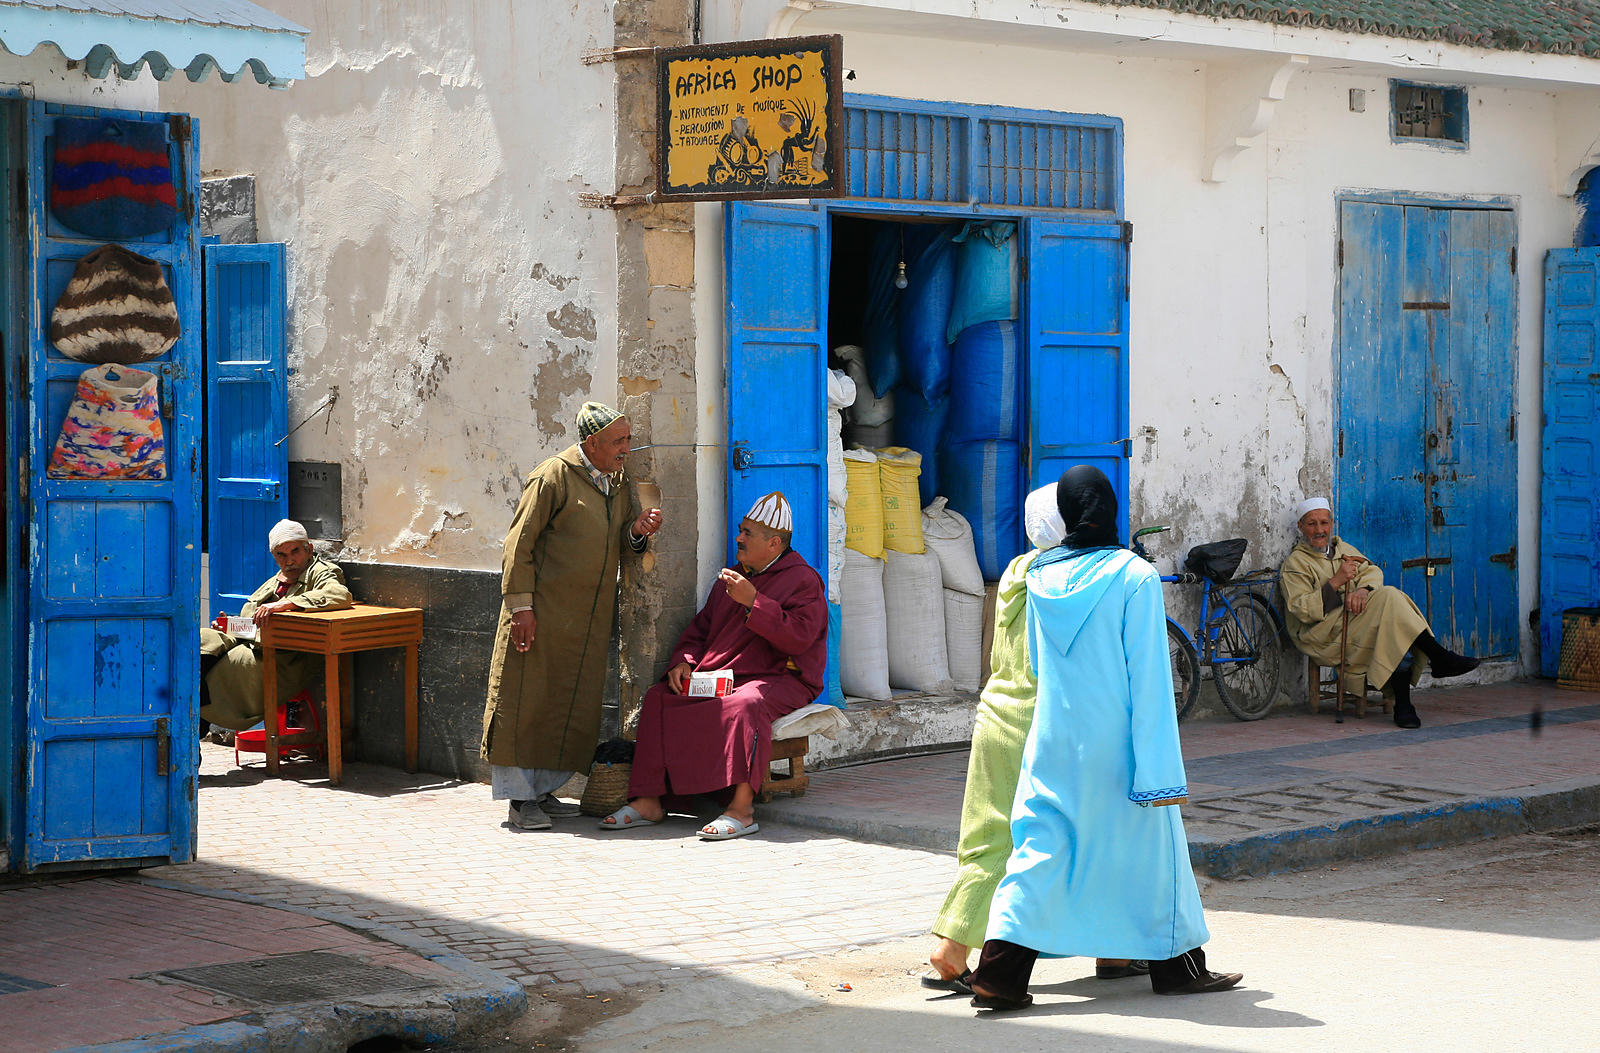 BLUE STREET IN ESSAOUIRA